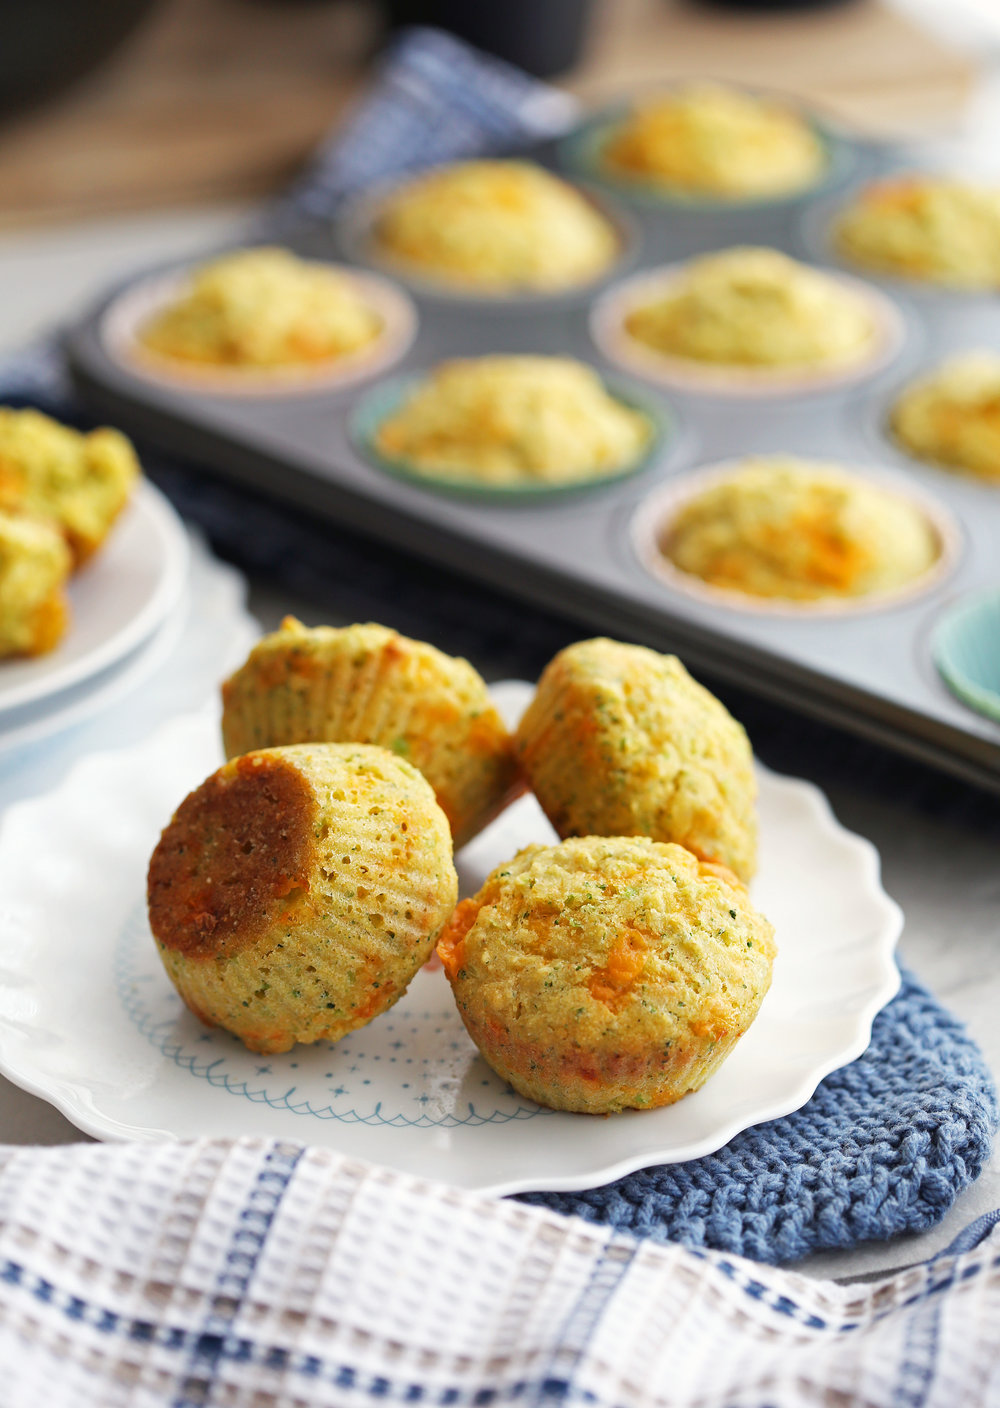 Four Broccoli Cheddar Cornbread Muffins on a white plate with more muffins in a muffin pan behind them.